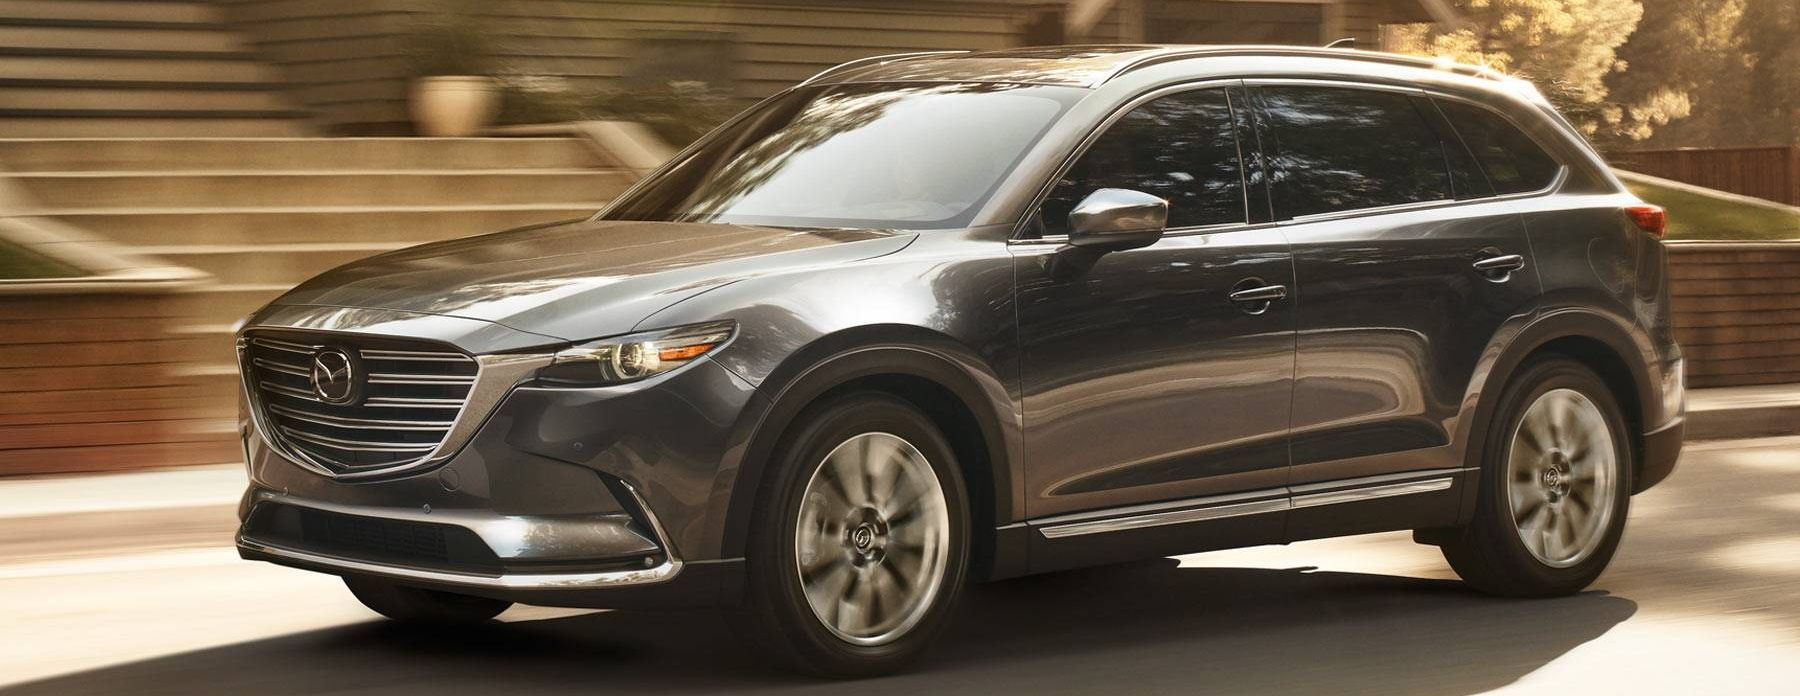 2019 Mazda CX-9: Expectations, Changes >> 2019 Mazda Cx 9 Leasing Near Angleton Tx